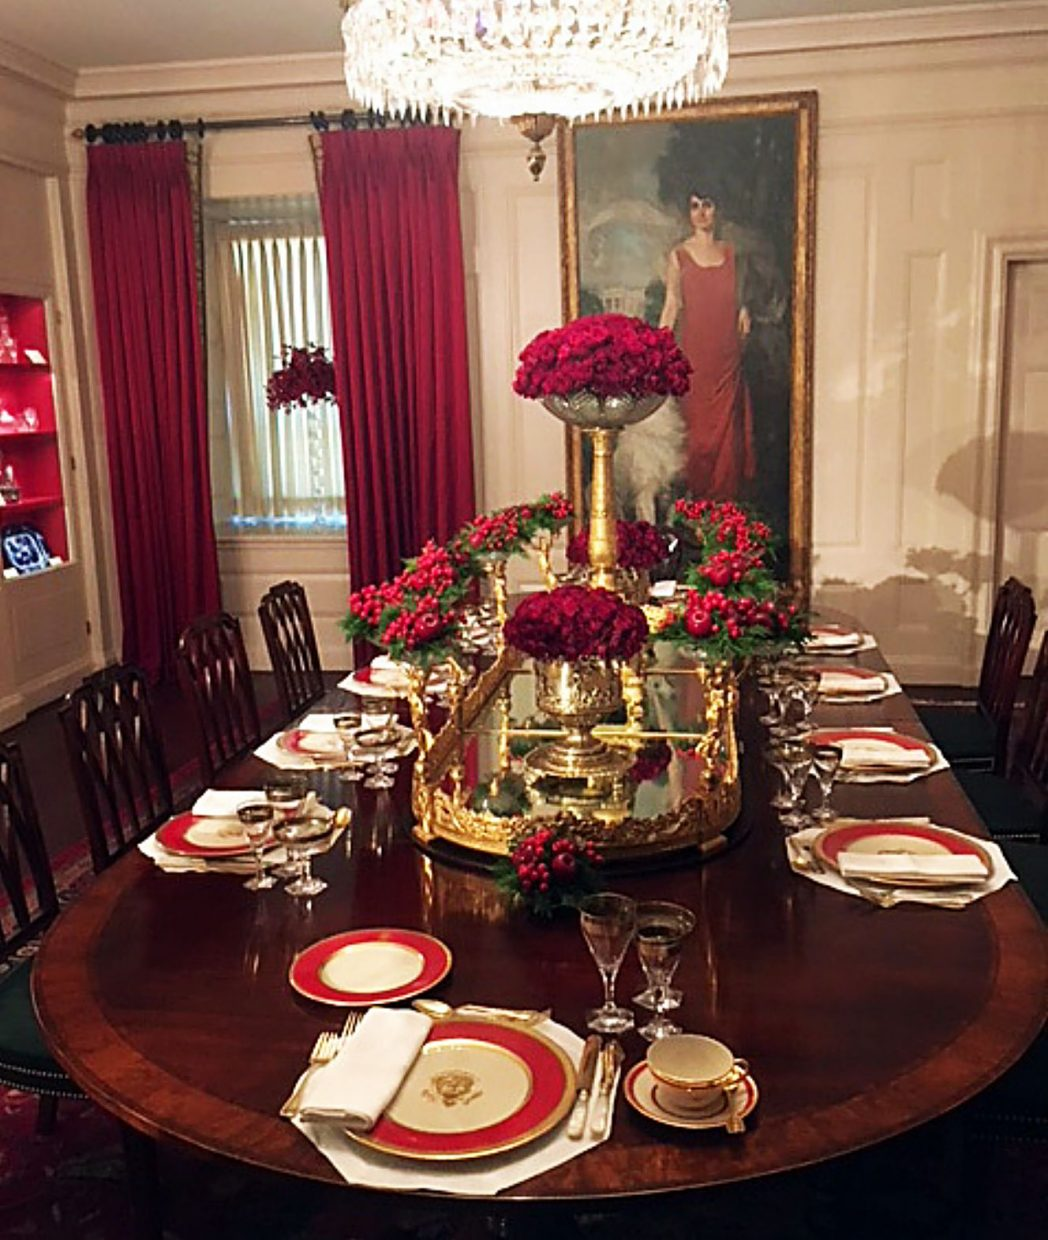 The China Room is set with the first china service made especially for the White House, commissioned by President James Monroe in 1817. In background is a portrait of First Lady Grace Coolidge.